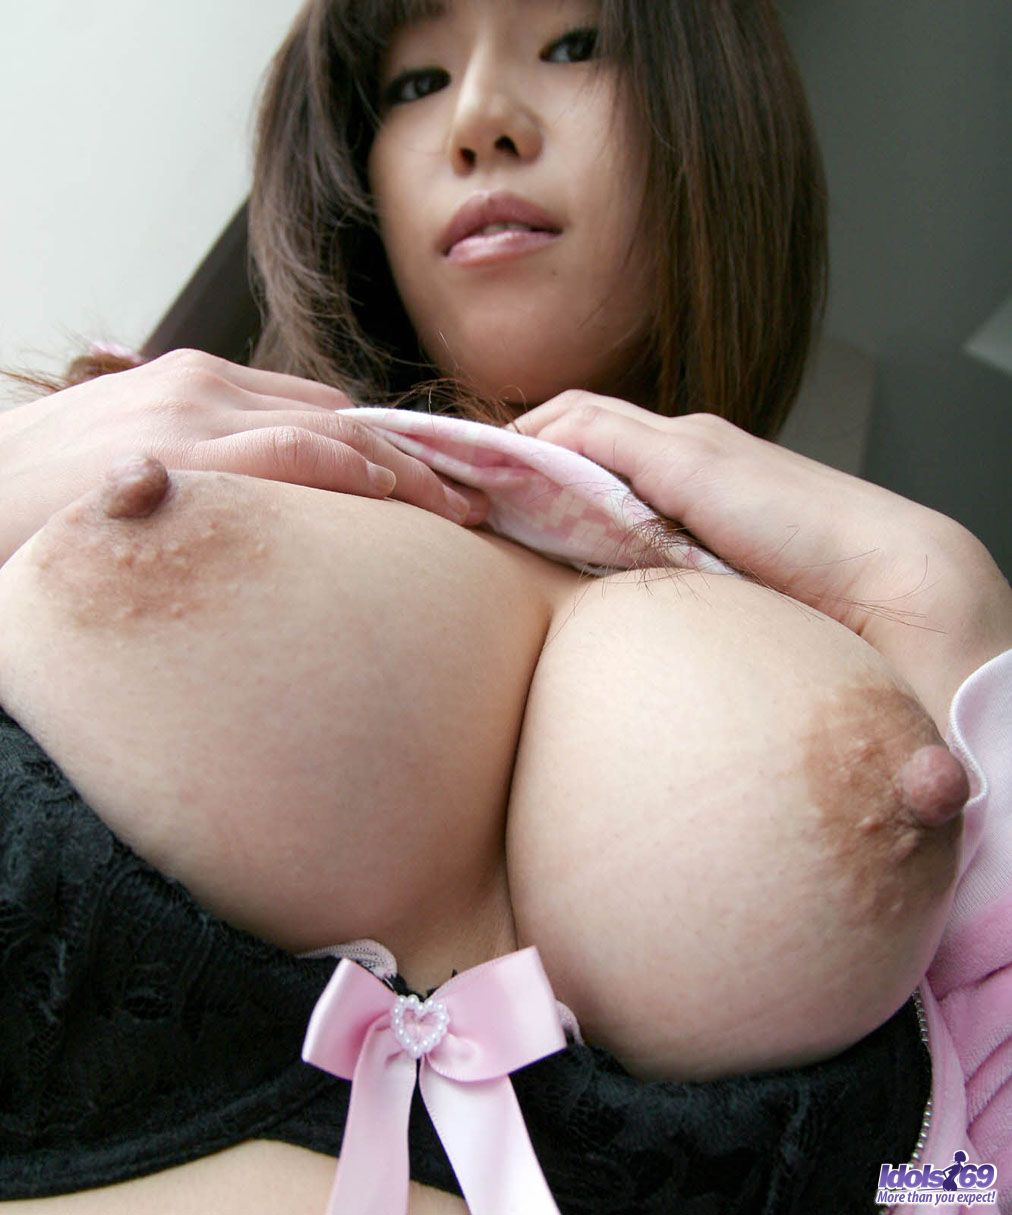 Asians Girls Big Bobs Photos